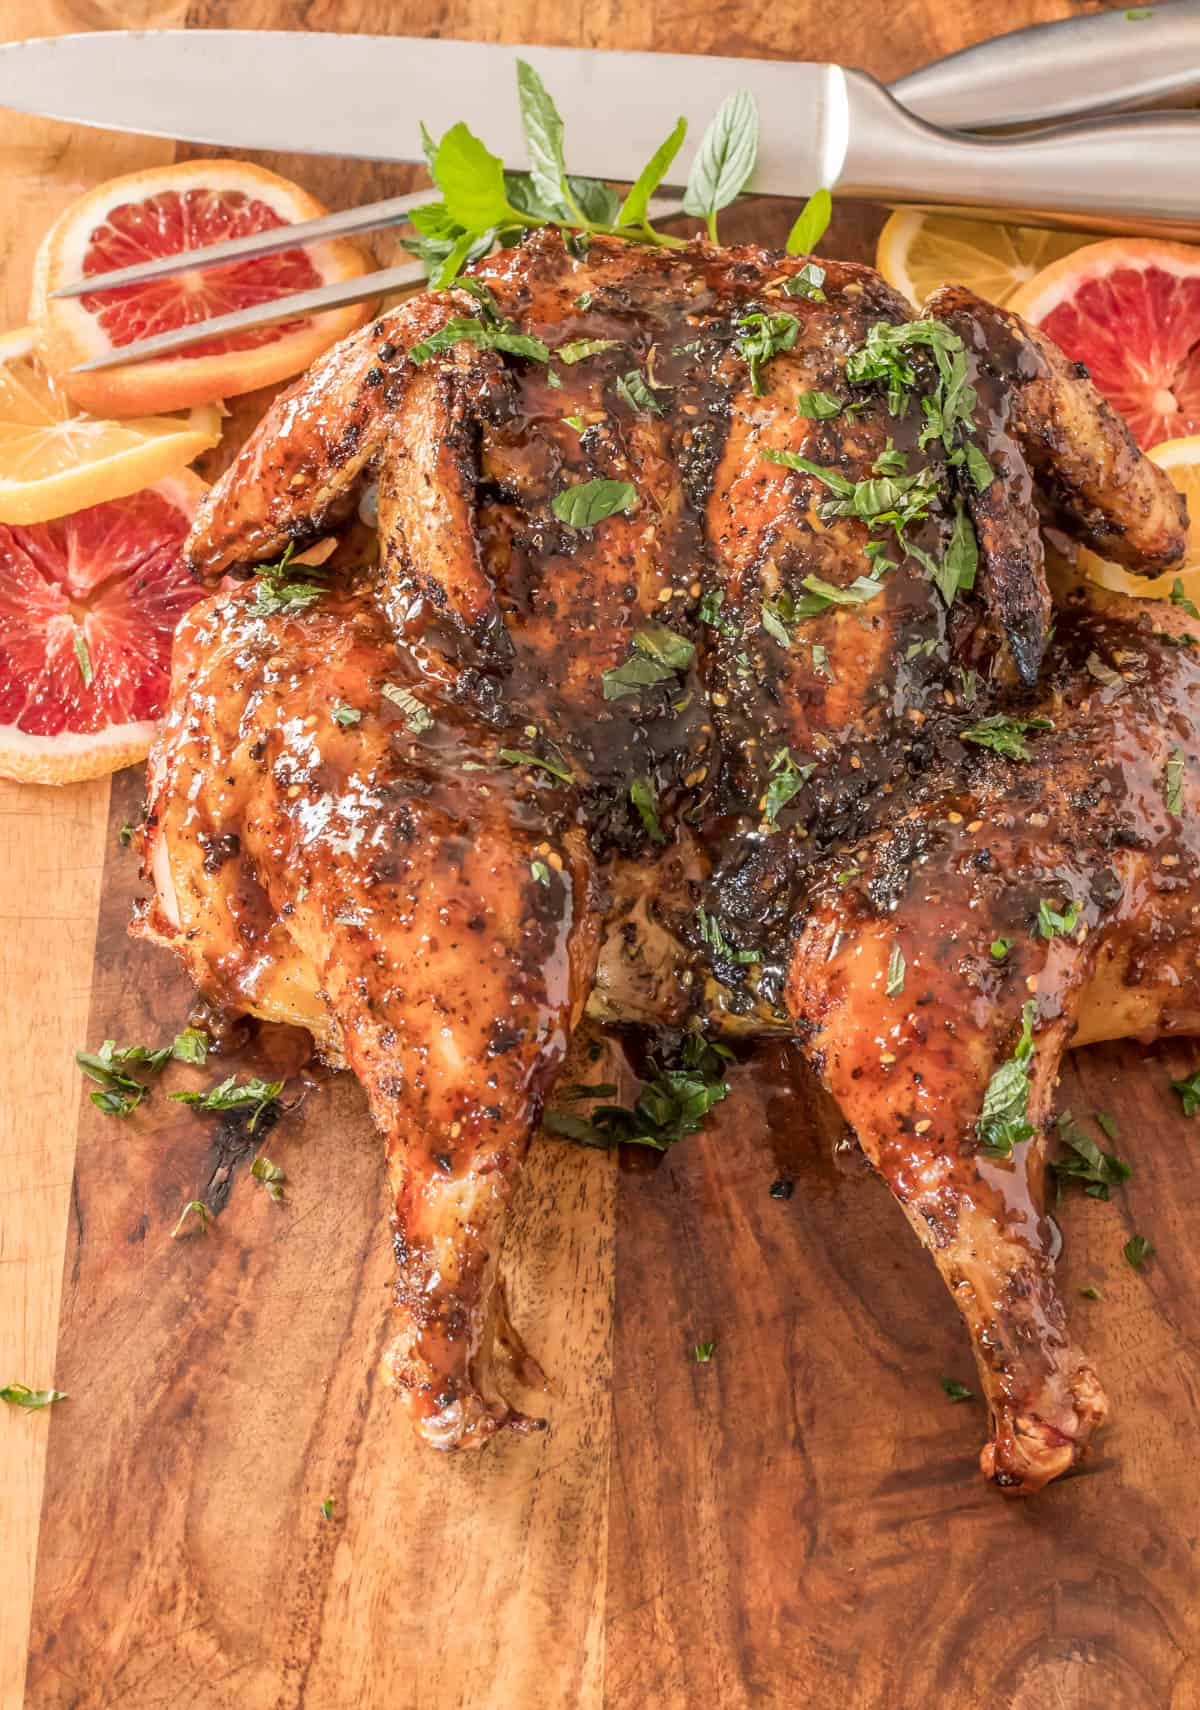 Butterflied and Grilled Za'atar Chicken - the whole chicken on a wood cutting board.